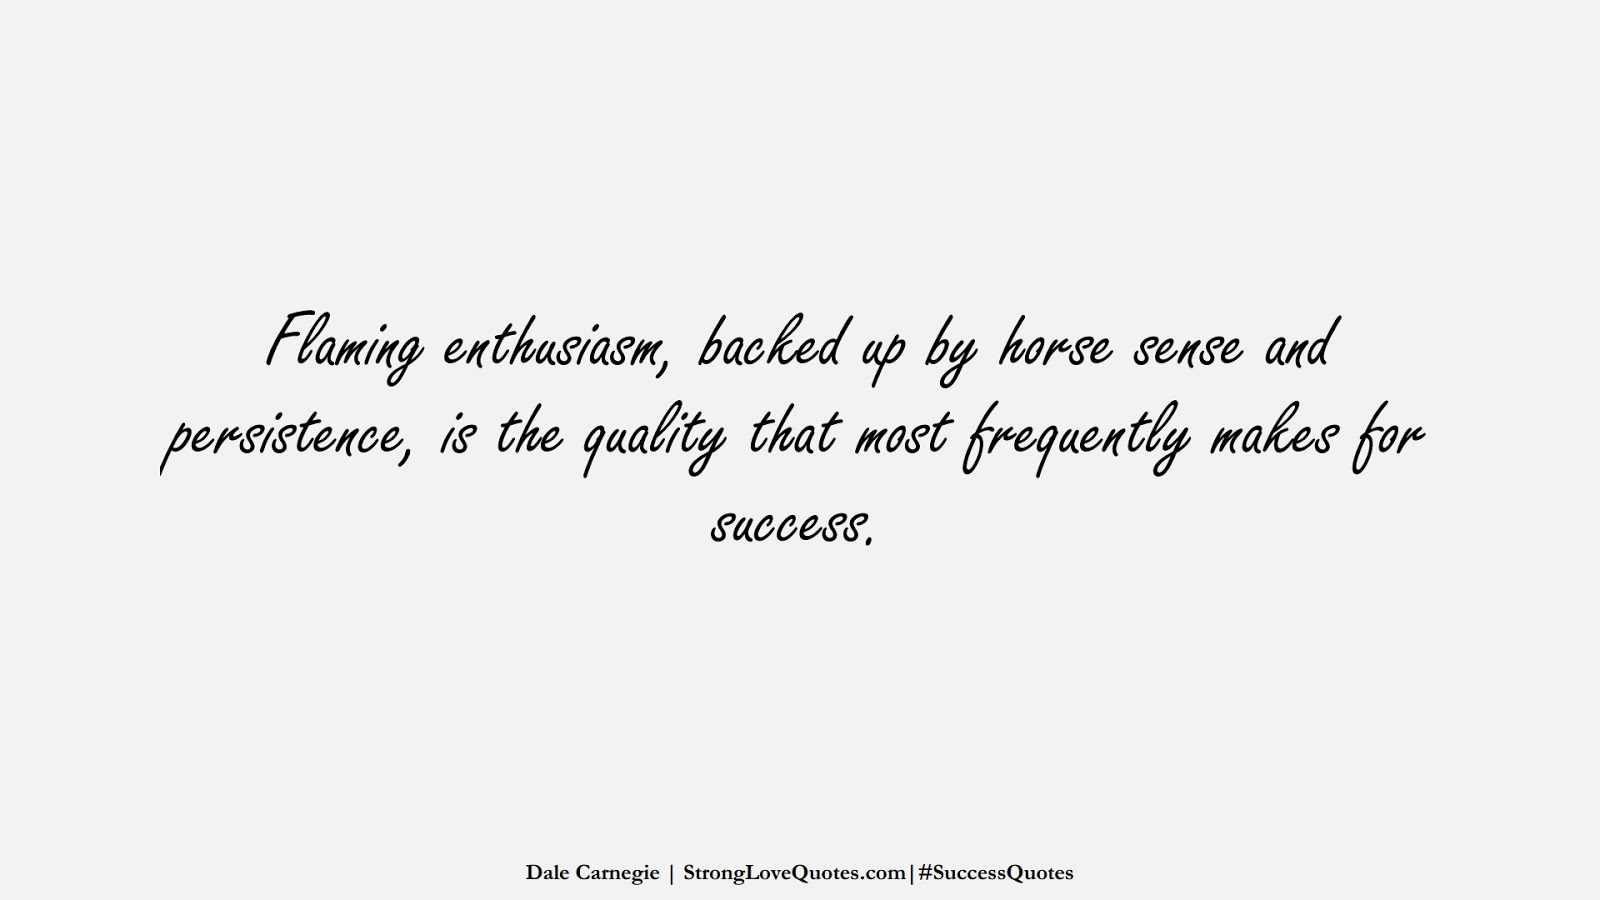 Flaming enthusiasm, backed up by horse sense and persistence, is the quality that most frequently makes for success. (Dale Carnegie);  #SuccessQuotes